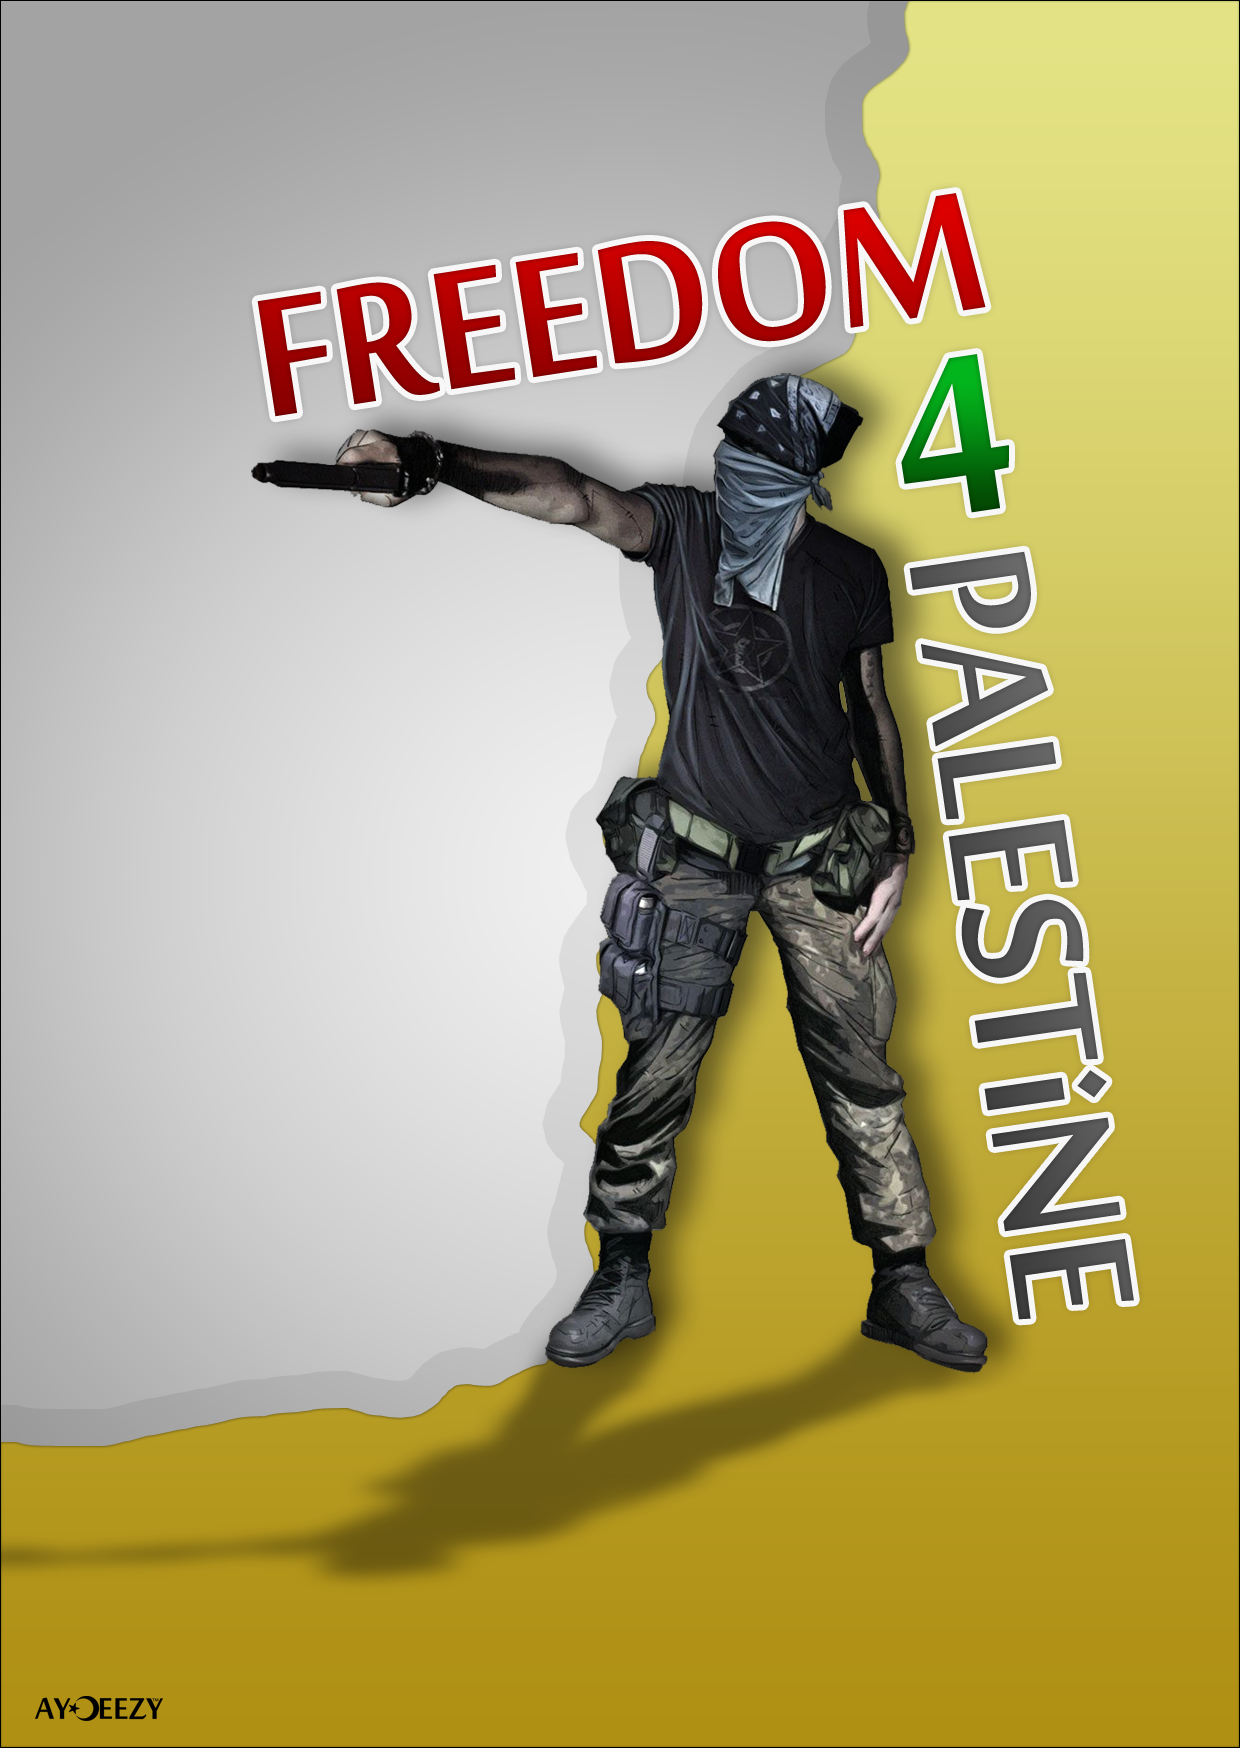 AY Deezy™ Freedom_for_palestine_v_2_0_by_aydeezy-d2yhtul